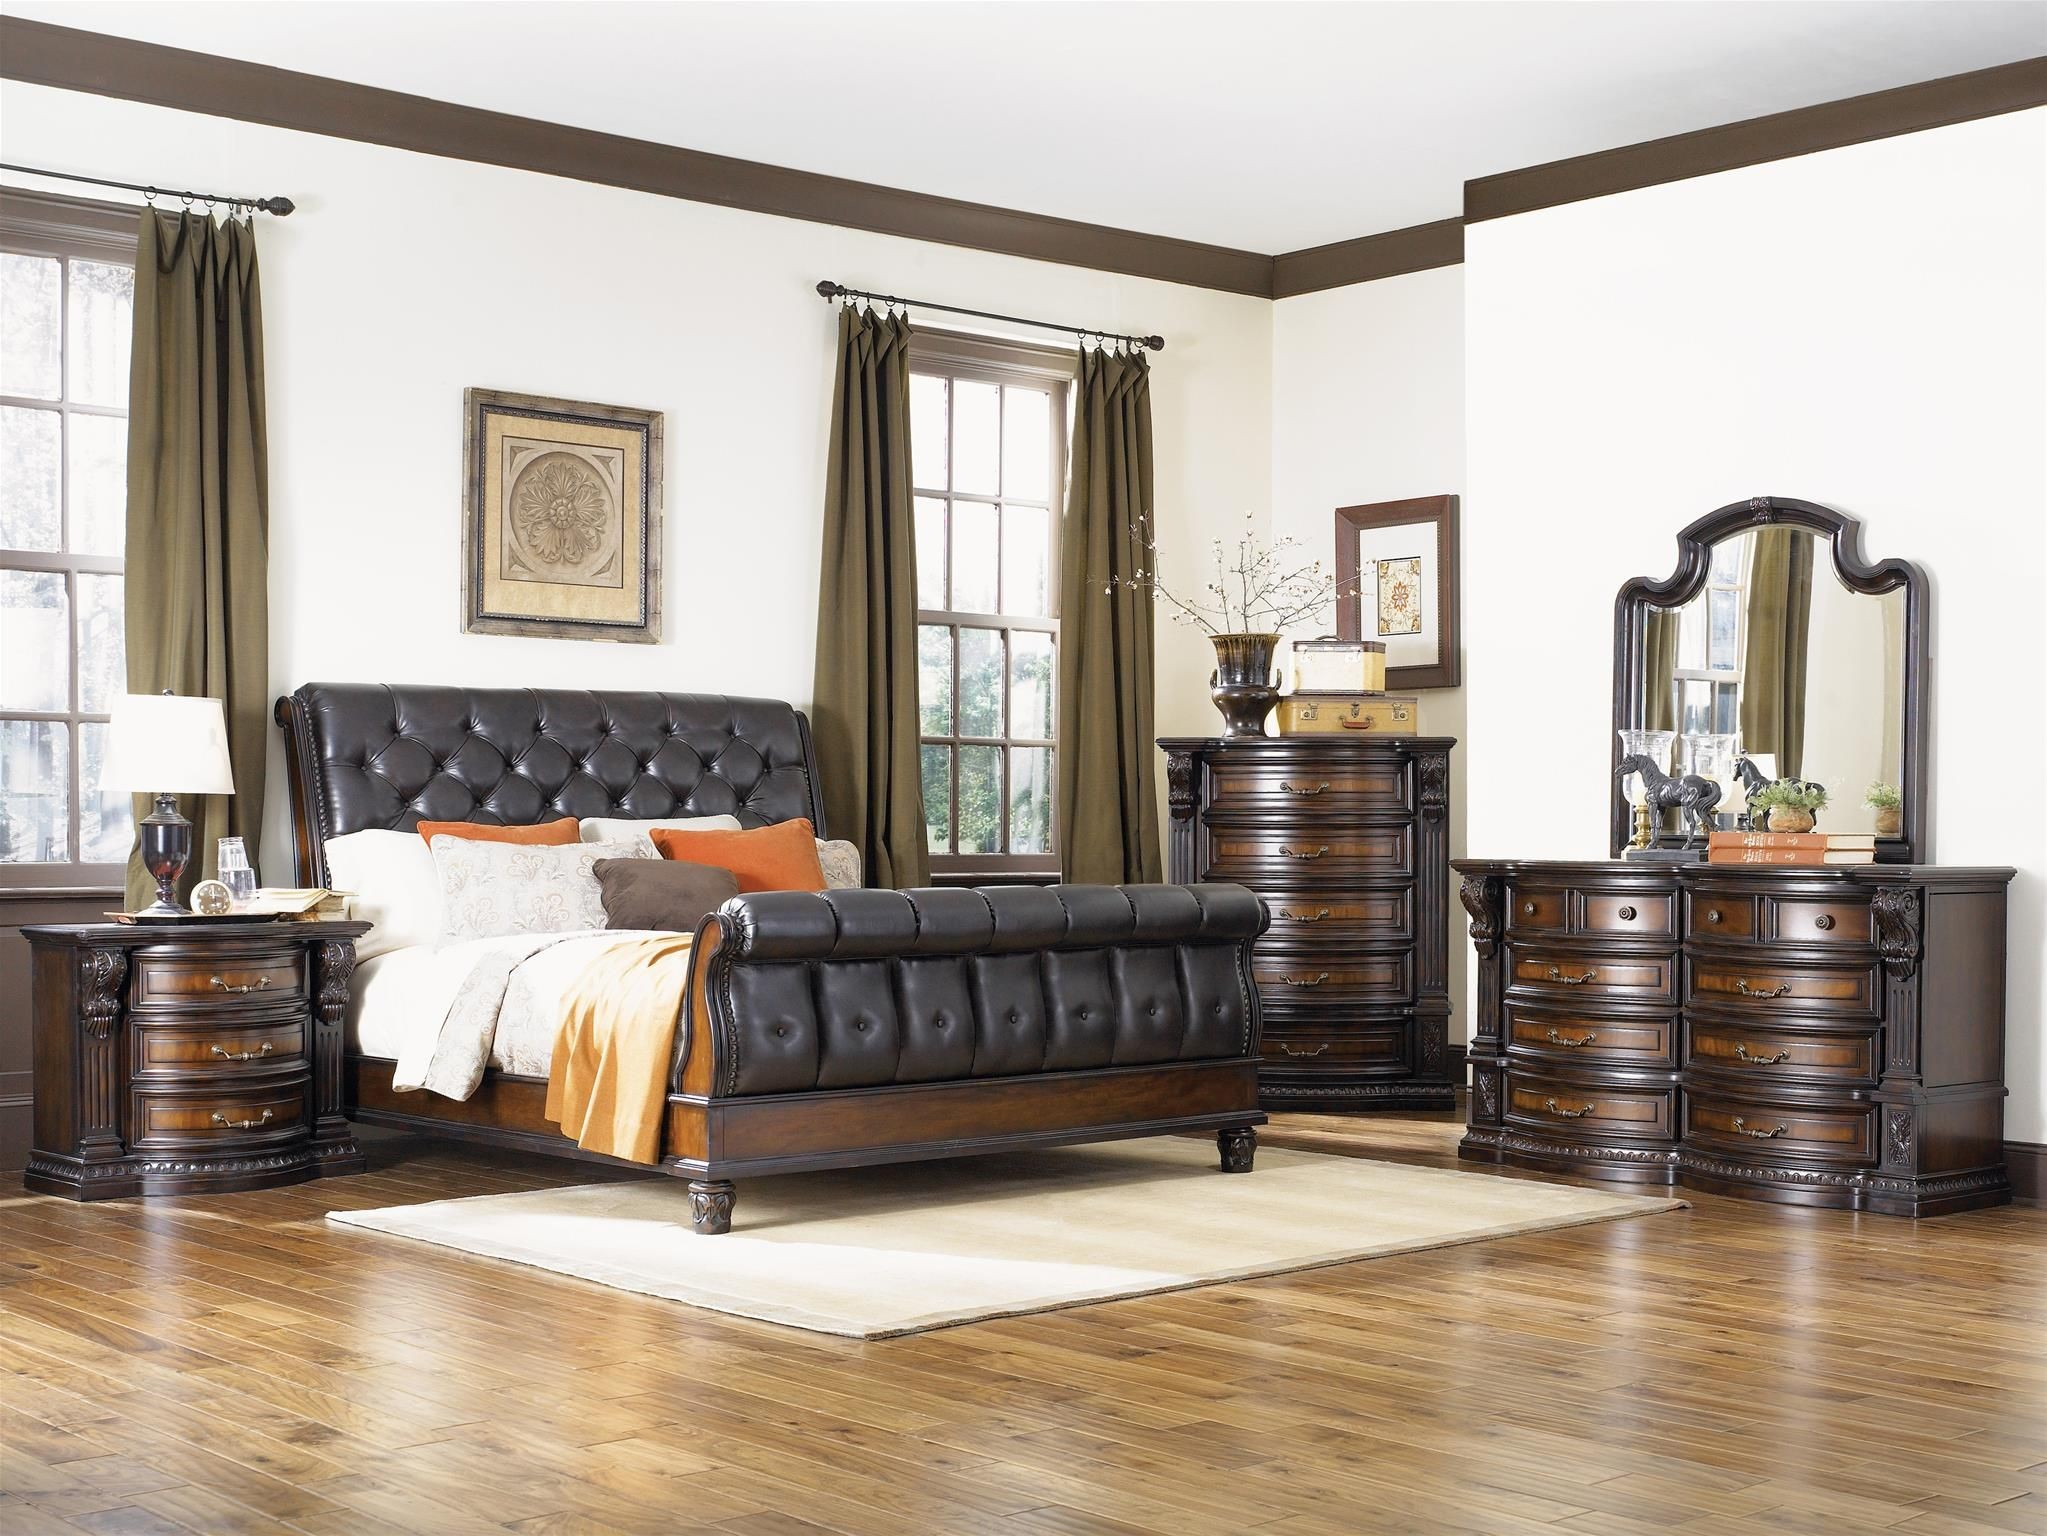 Grand Estates Cinnamon Sleigh Bedroom Set from Fairmont ...